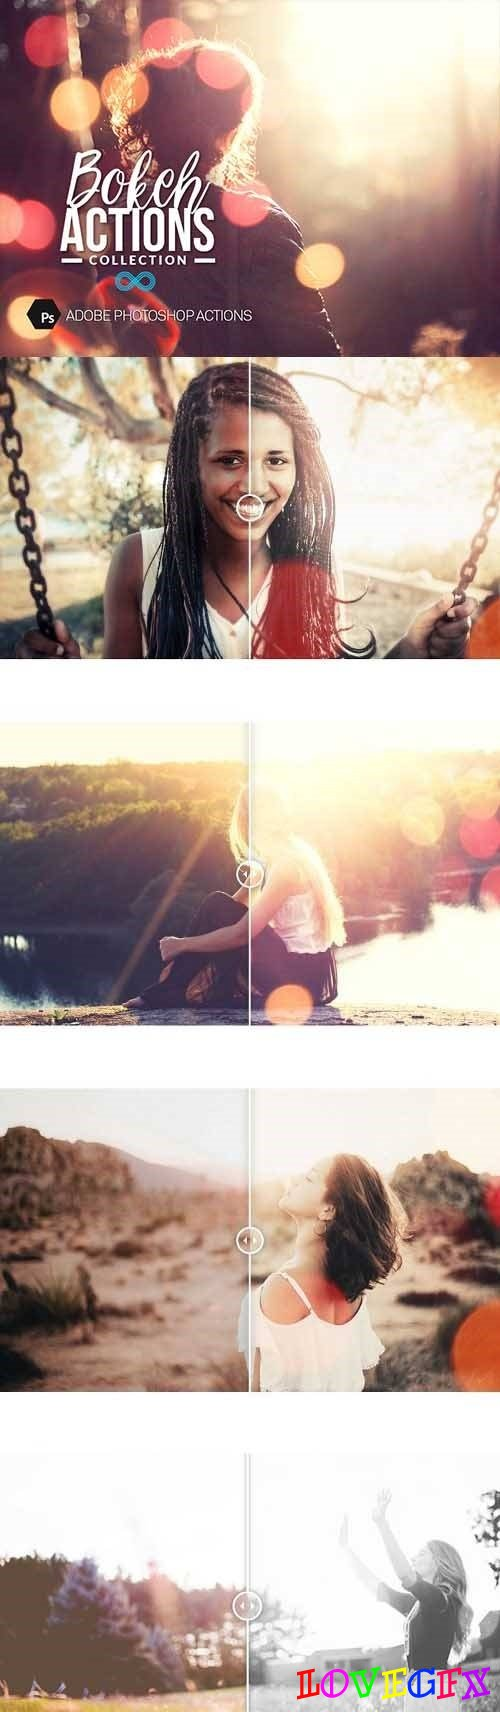 Photonify - Bokeh Collection Photoshop Actions